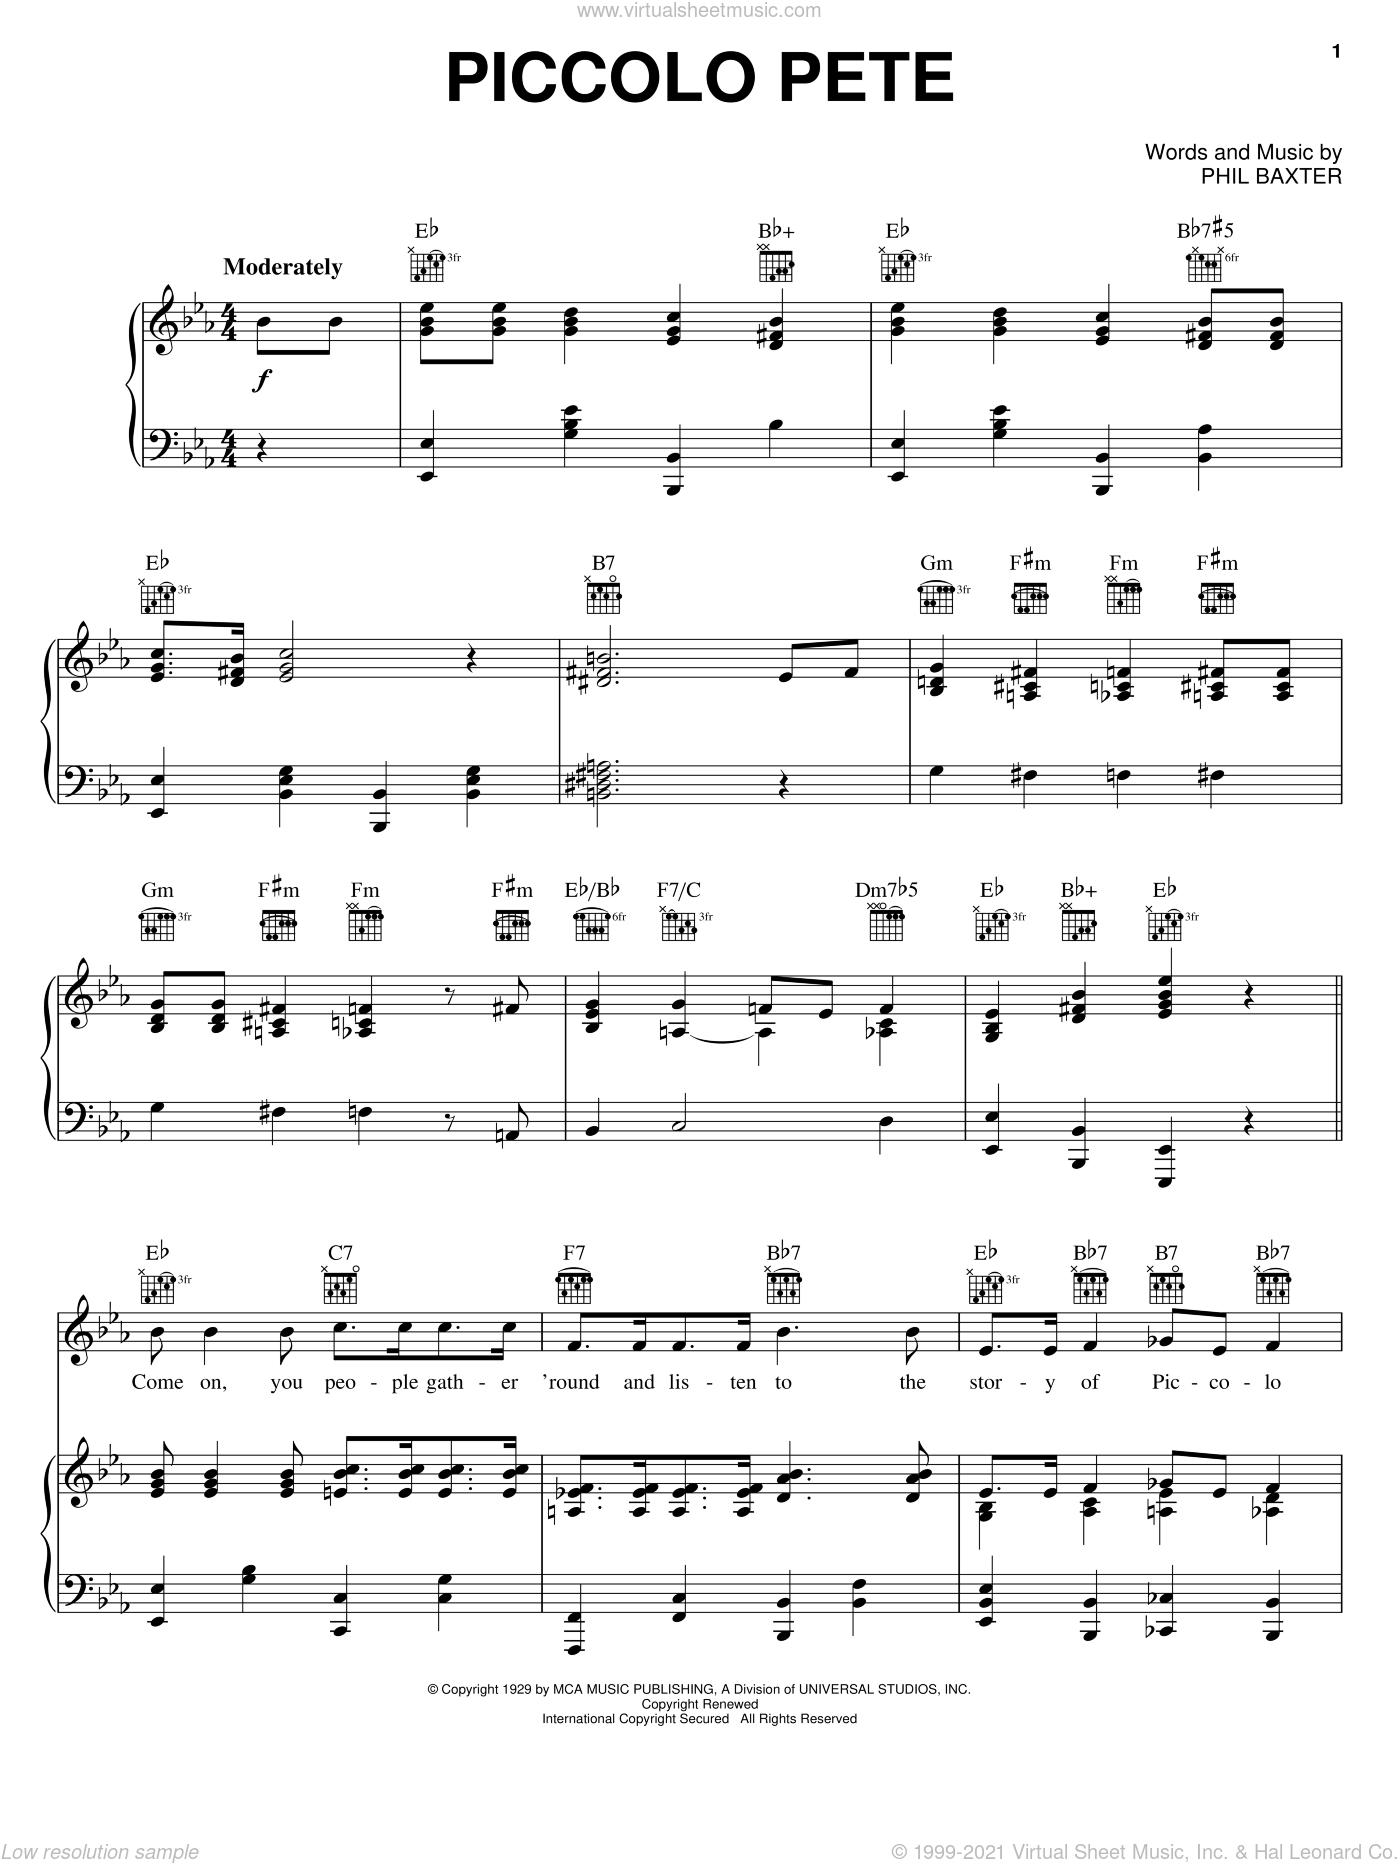 Piccolo Pete sheet music for voice, piano or guitar by Ted Weems and Phil Baxter. Score Image Preview.